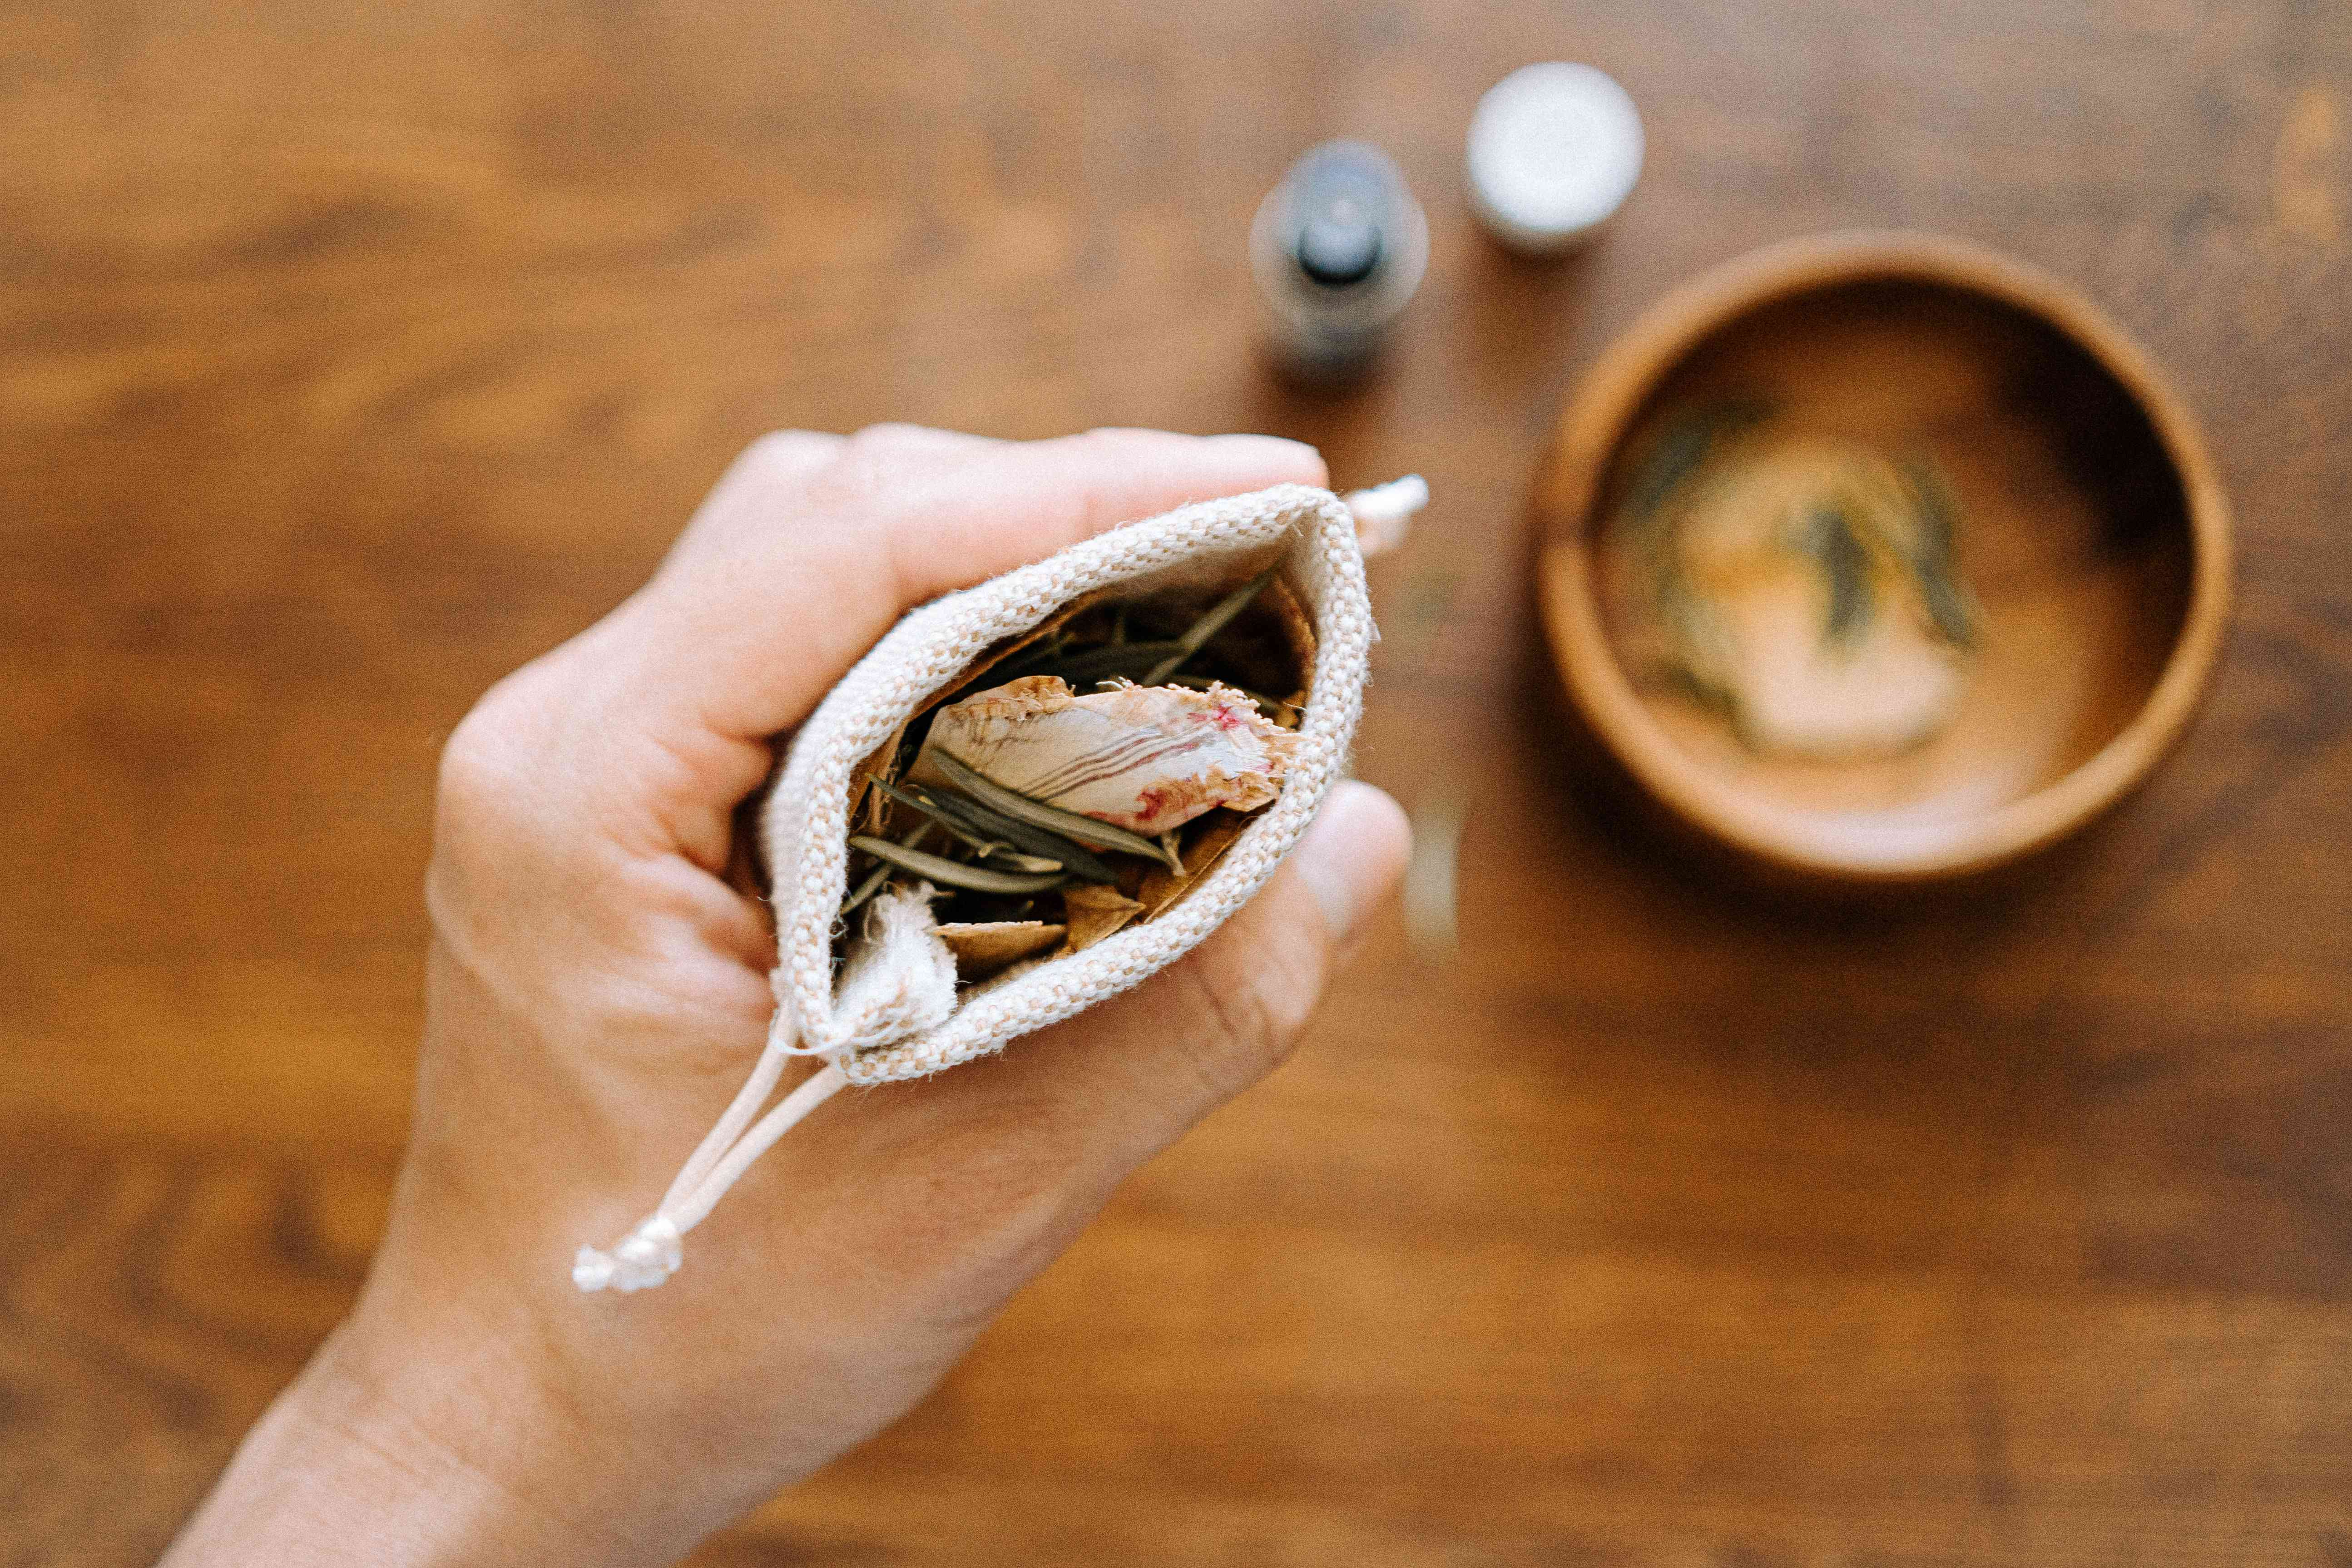 making your own sachets